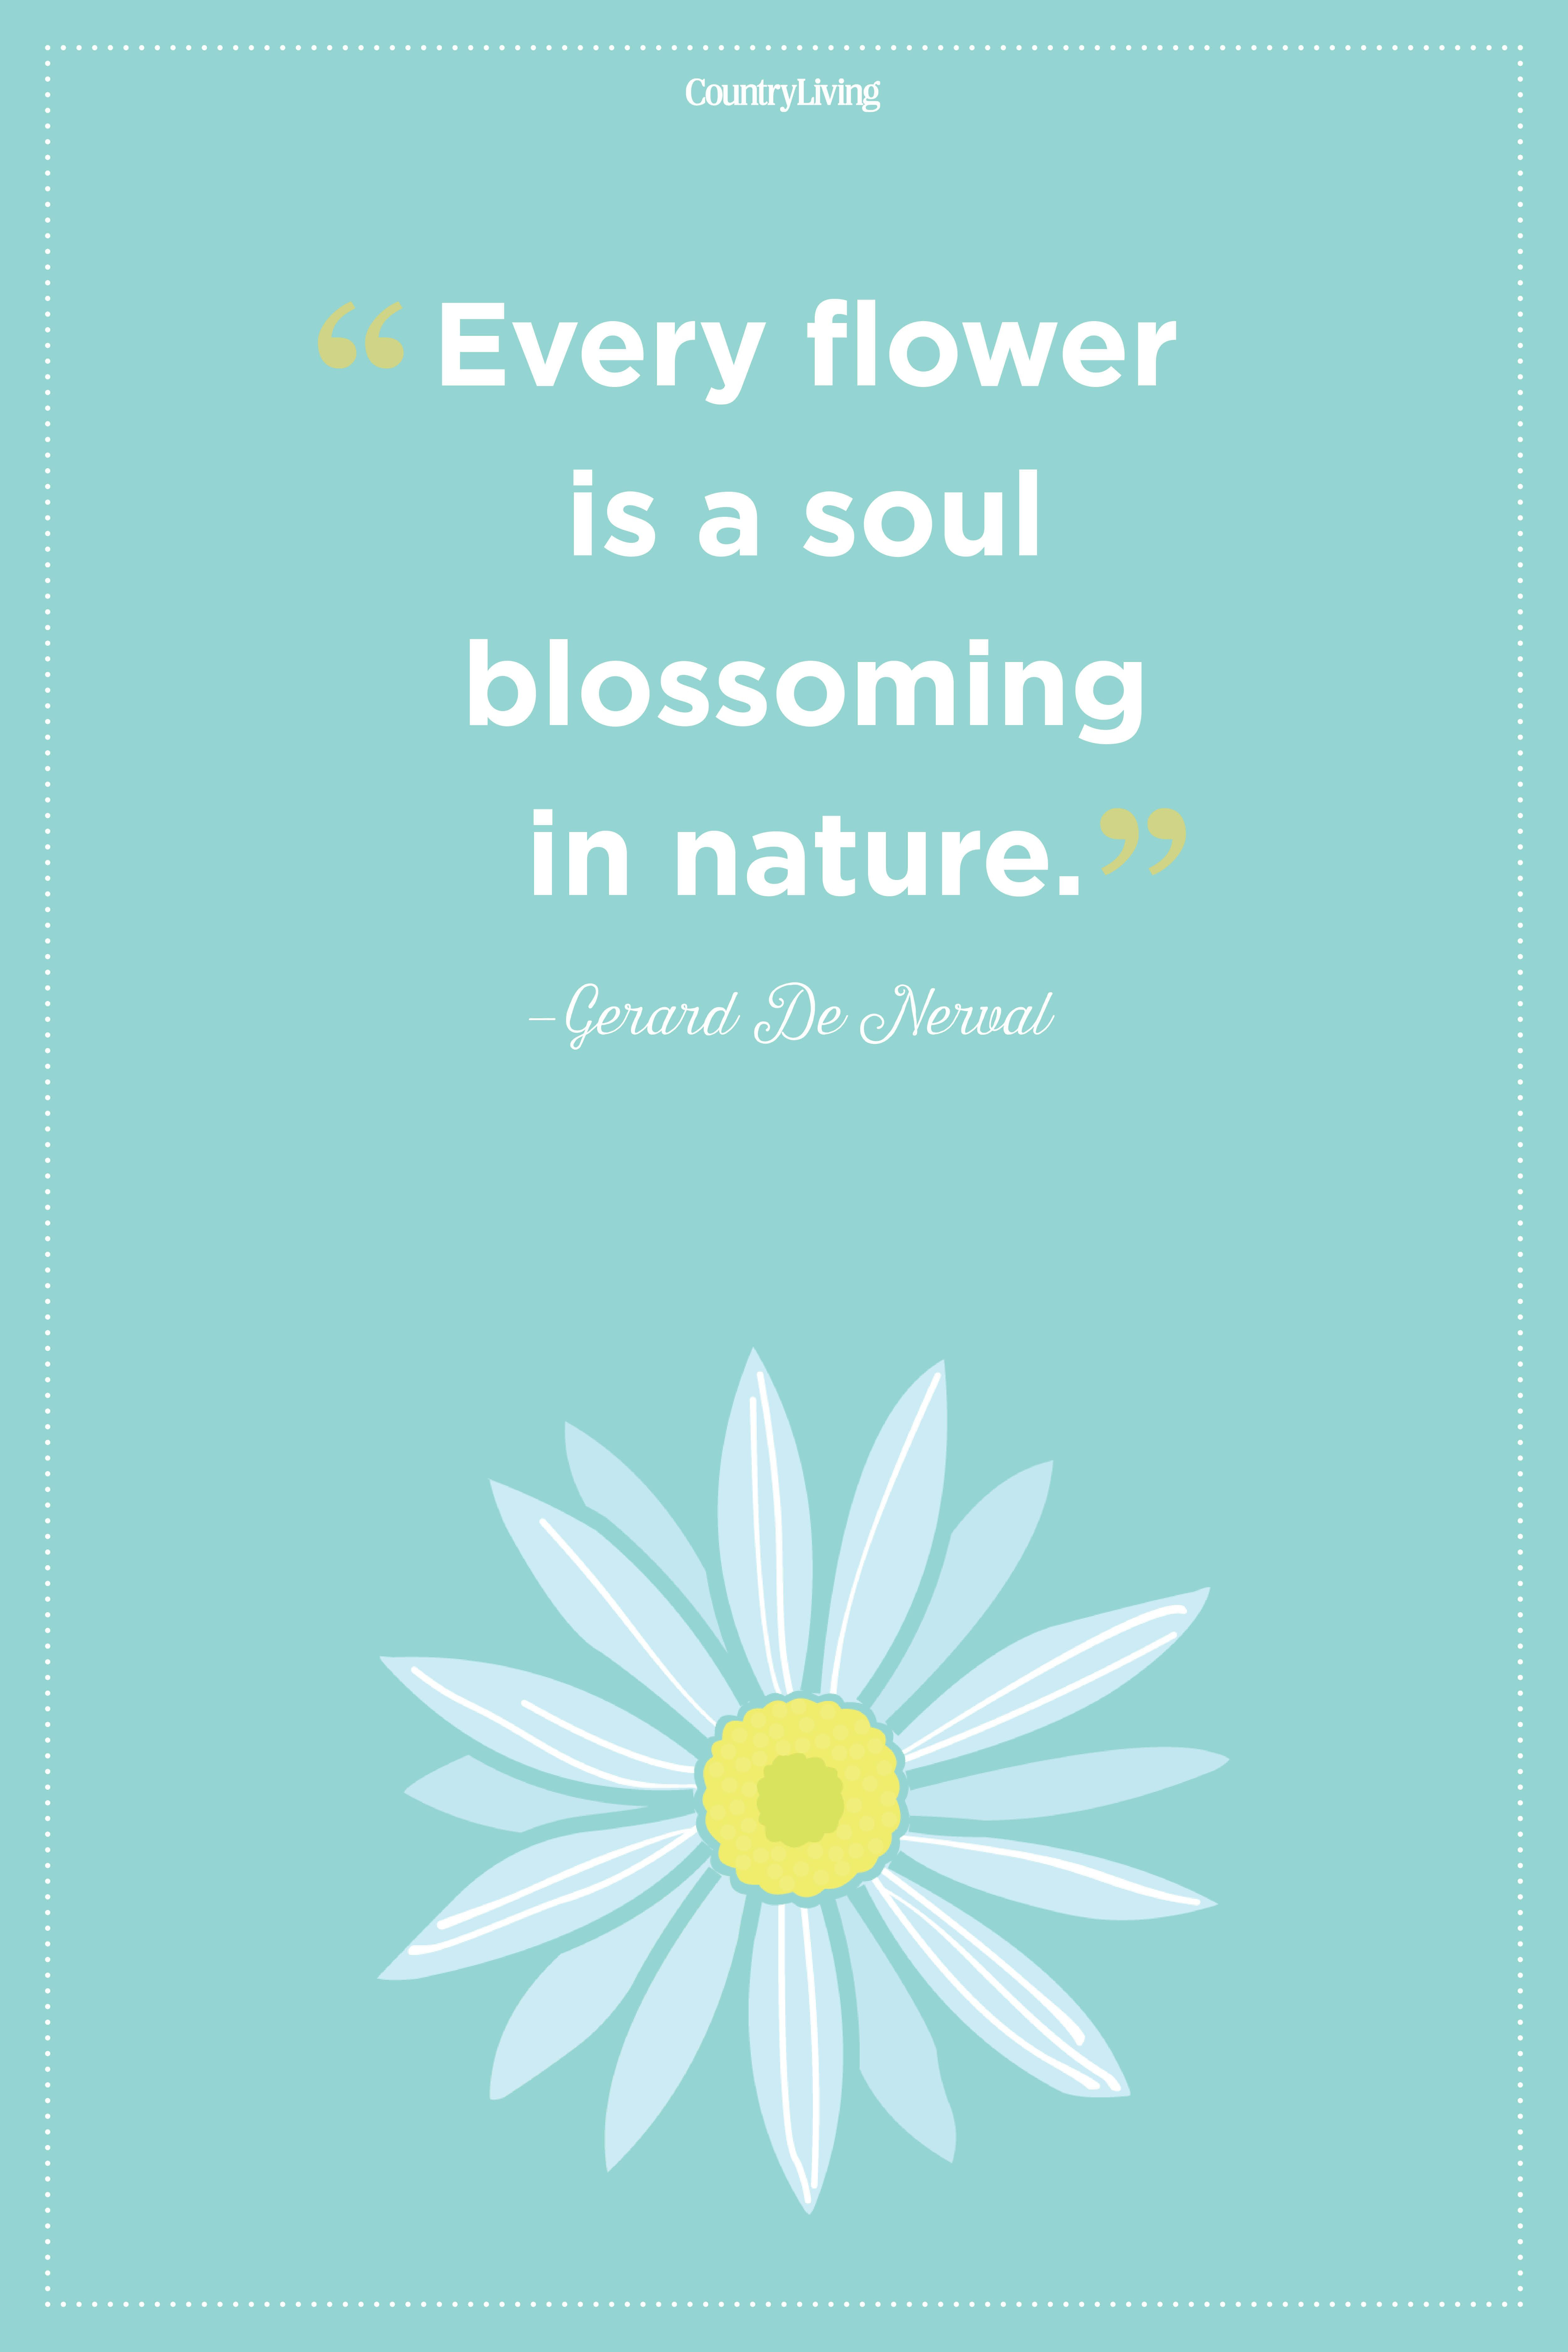 20 Inspirational Flower Quotes Cute Flower Sayings About Life And Love